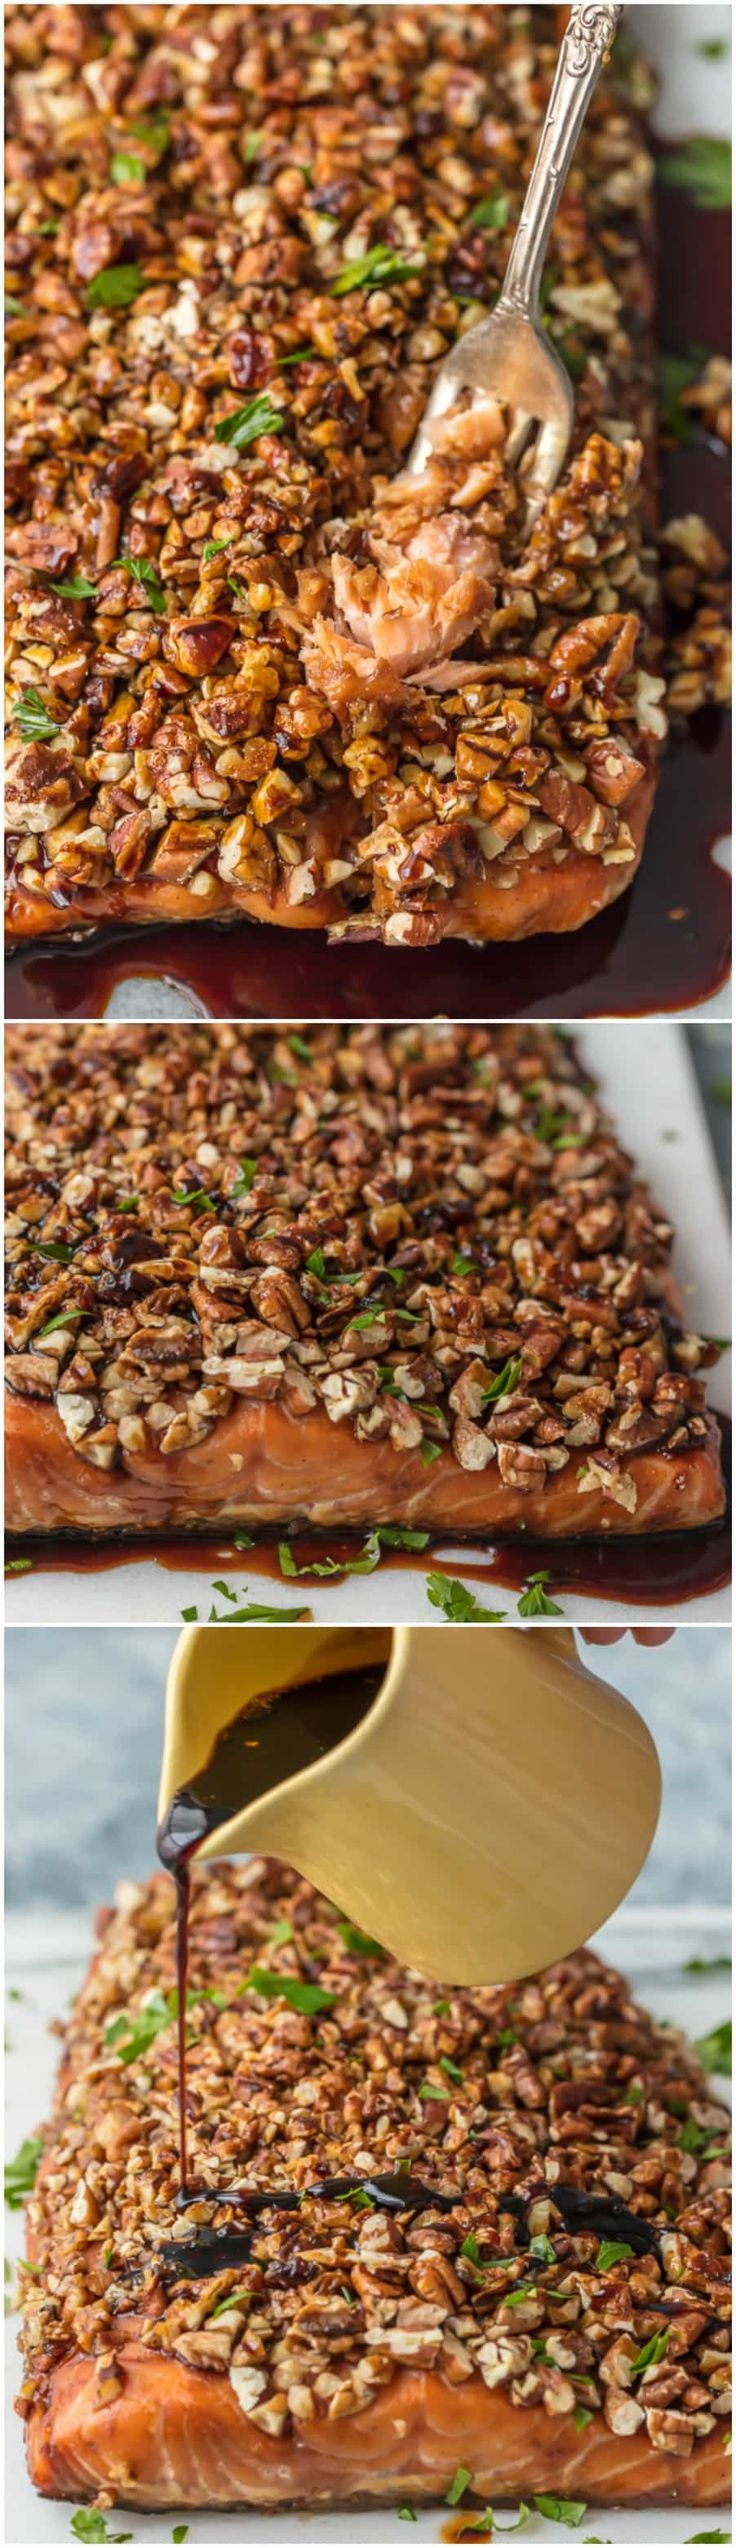 This PECAN CRUSTED HONEY BOURBON SALMON is ultra delicious and easy! The perfect family meal with all of the flavor and none of the fuss. via @beckygallhardin